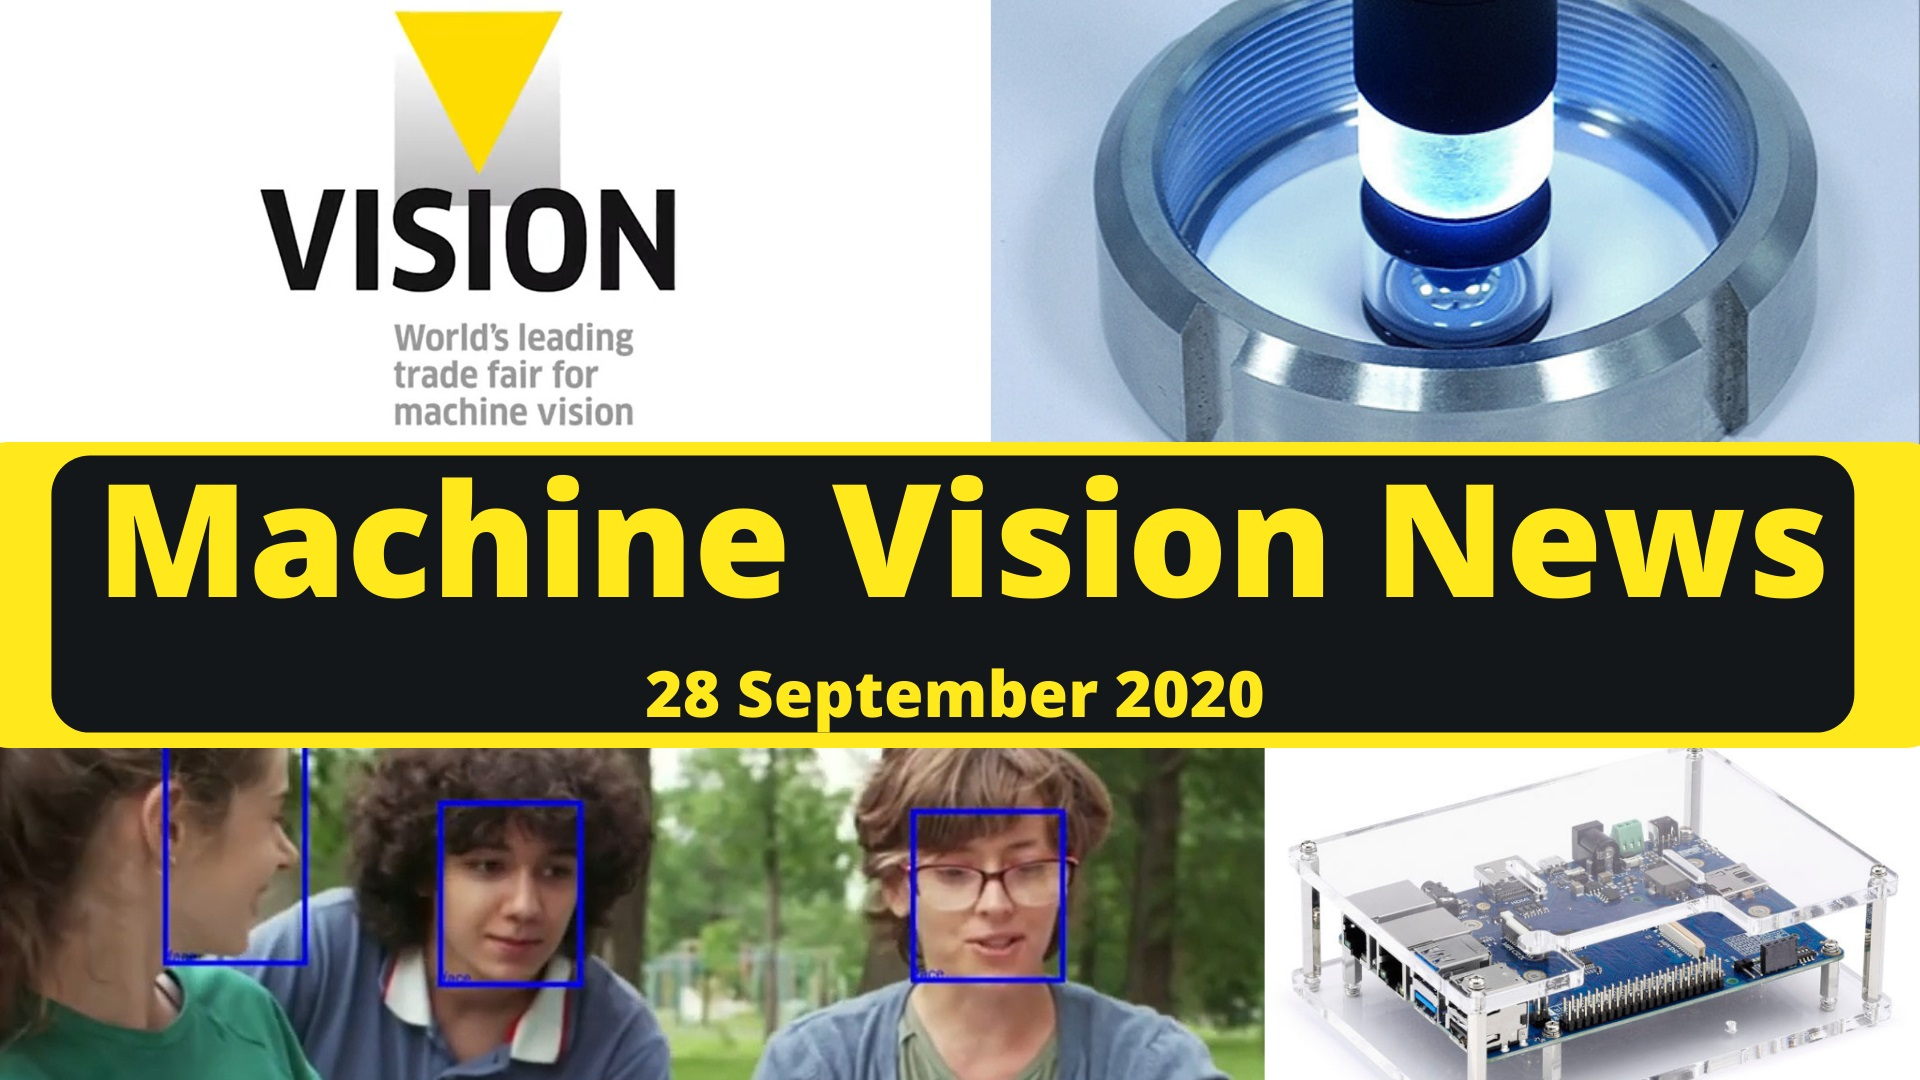 machine vision news september 2020